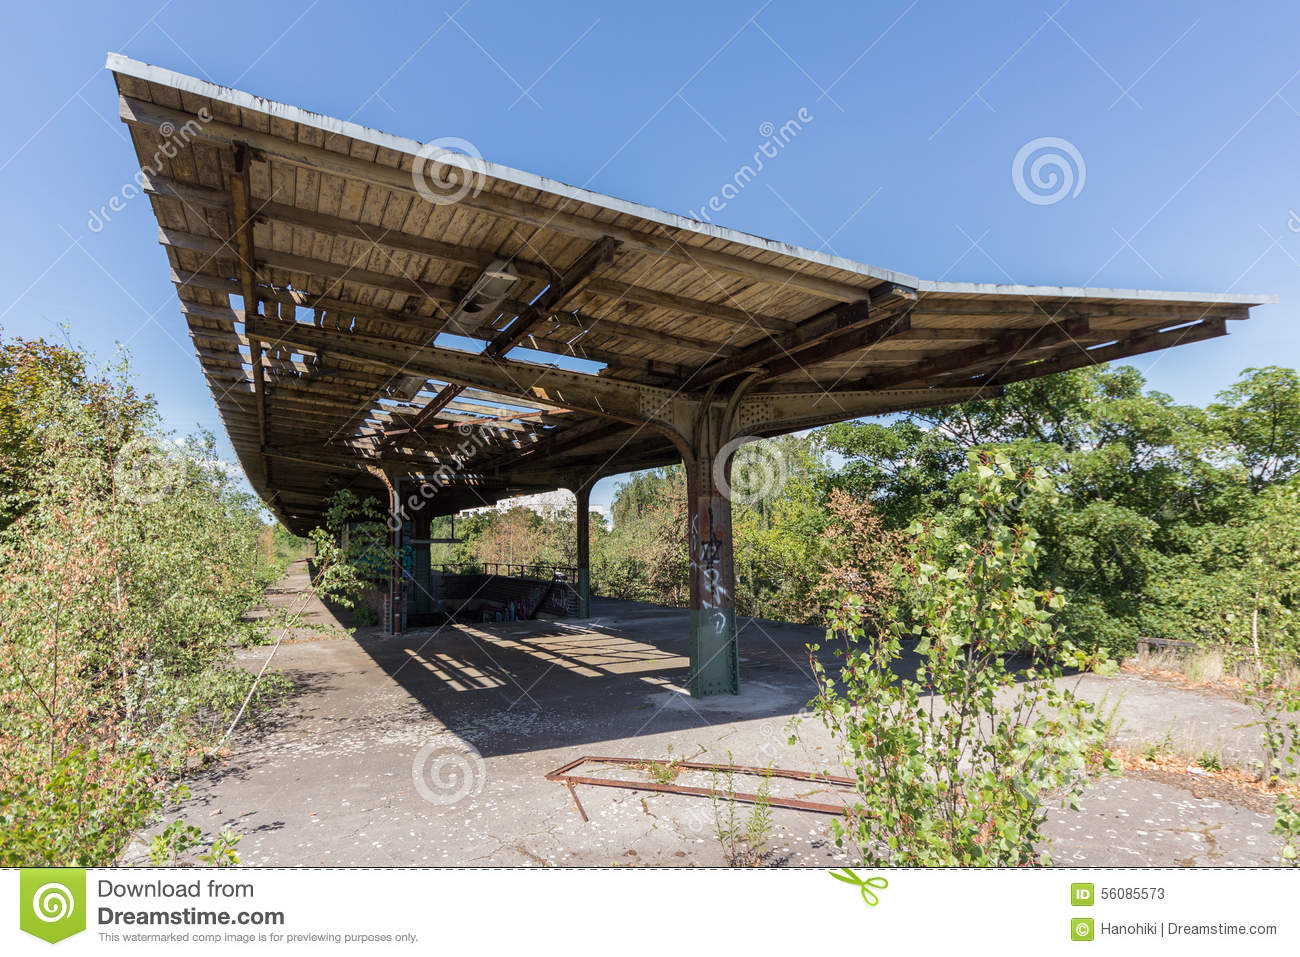 Outdoor Roof old train station, abandoned and overgrown - outdoor with